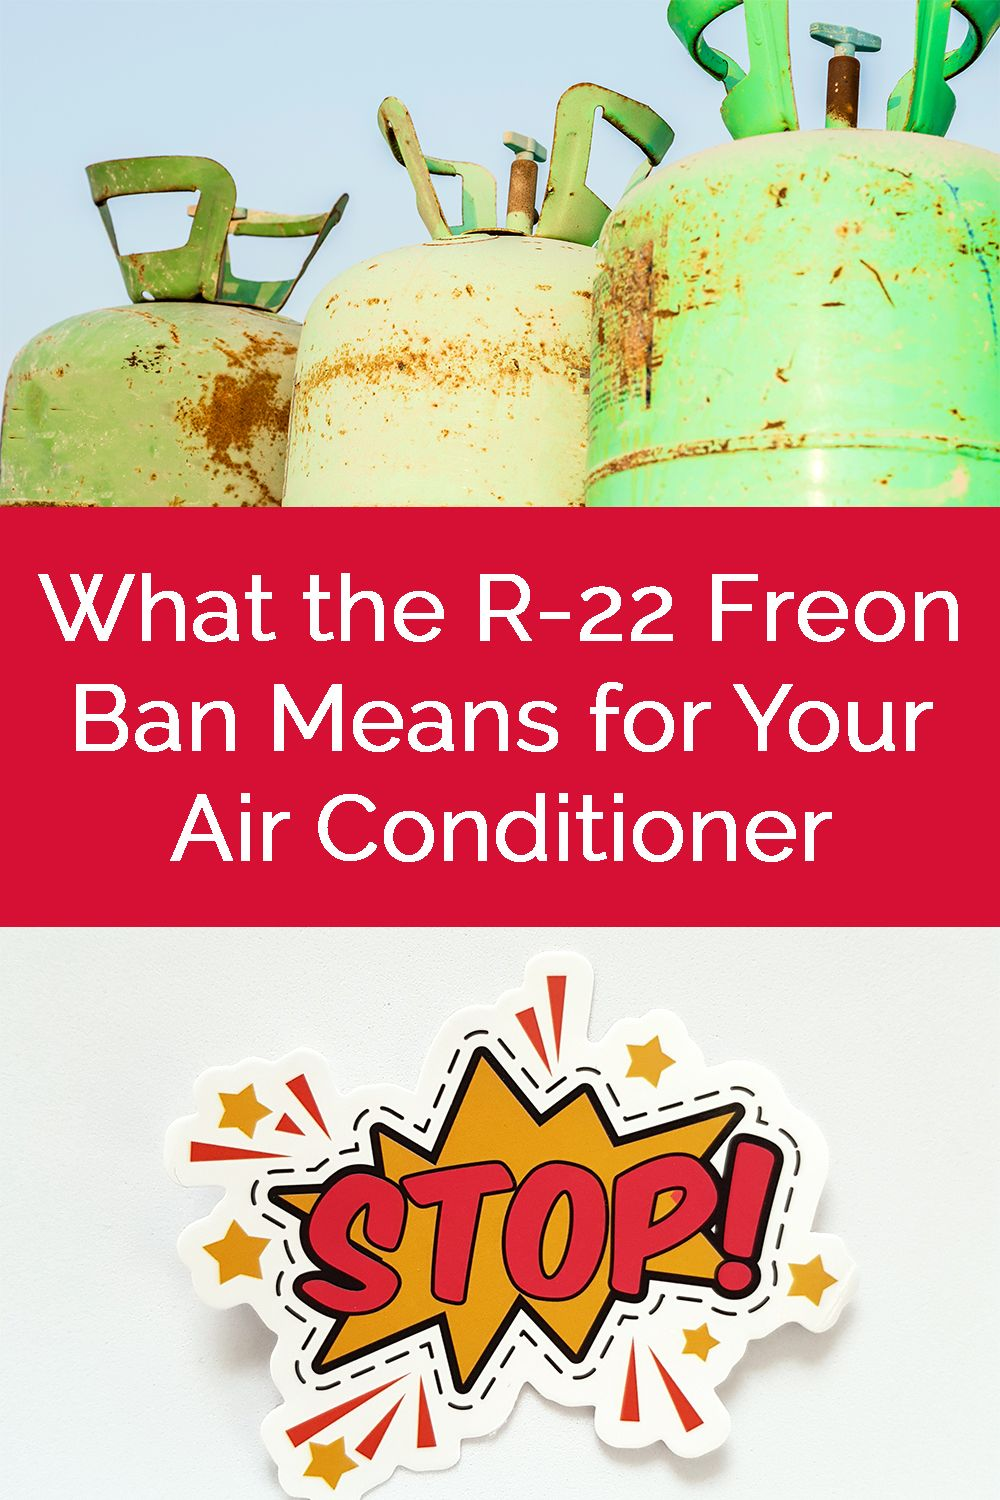 If your air conditioner uses Freon, it might be time for a